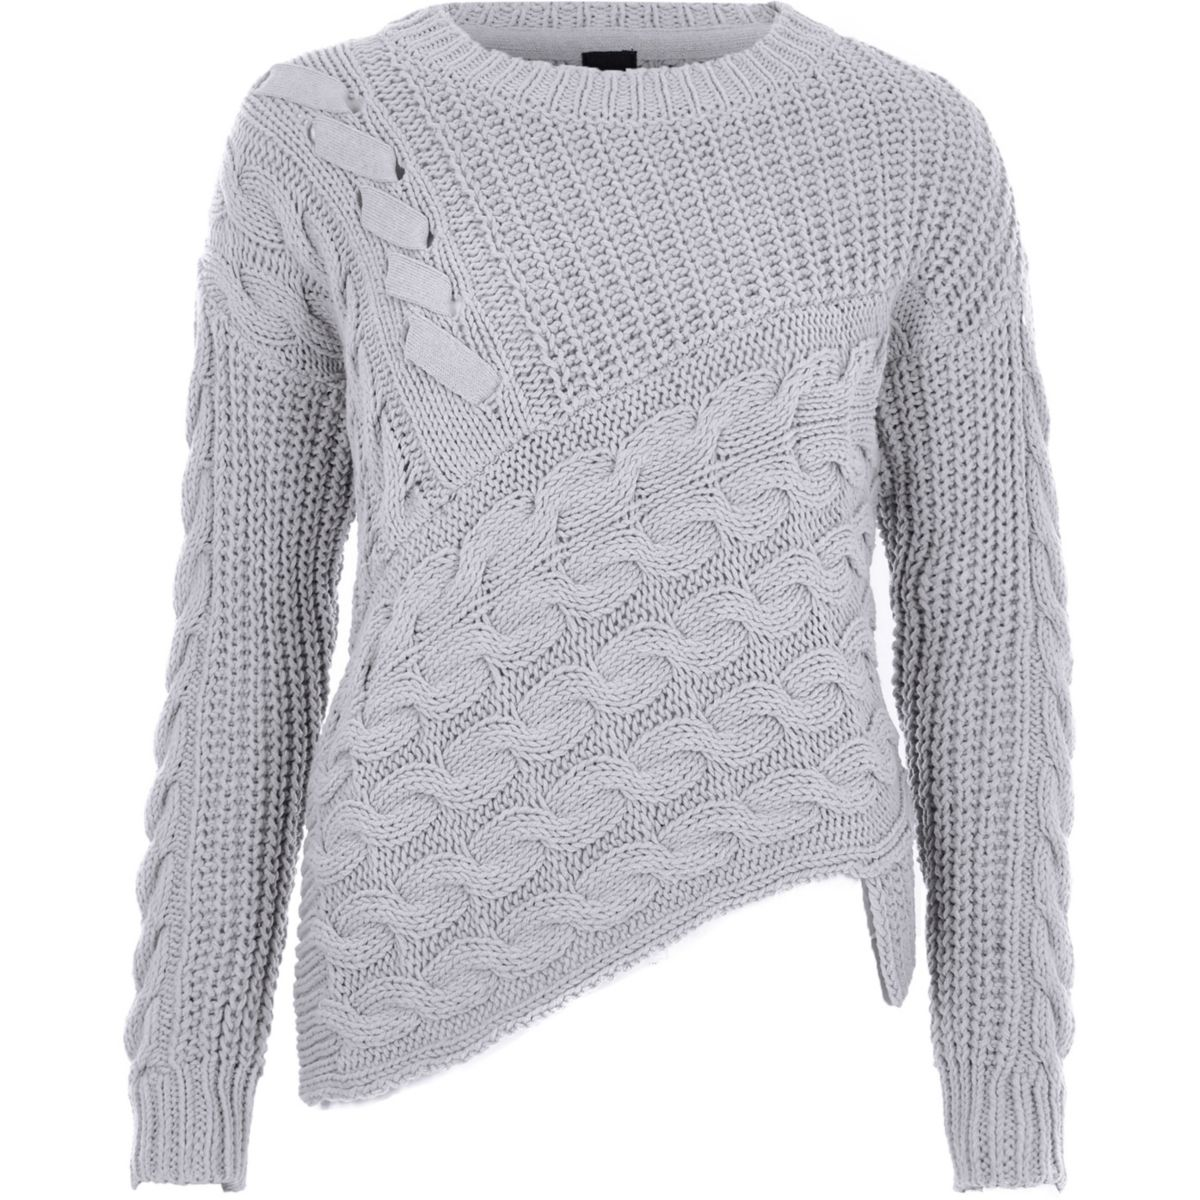 Grey cable knit asymmetric sweater - Sweaters - Knitwear - women